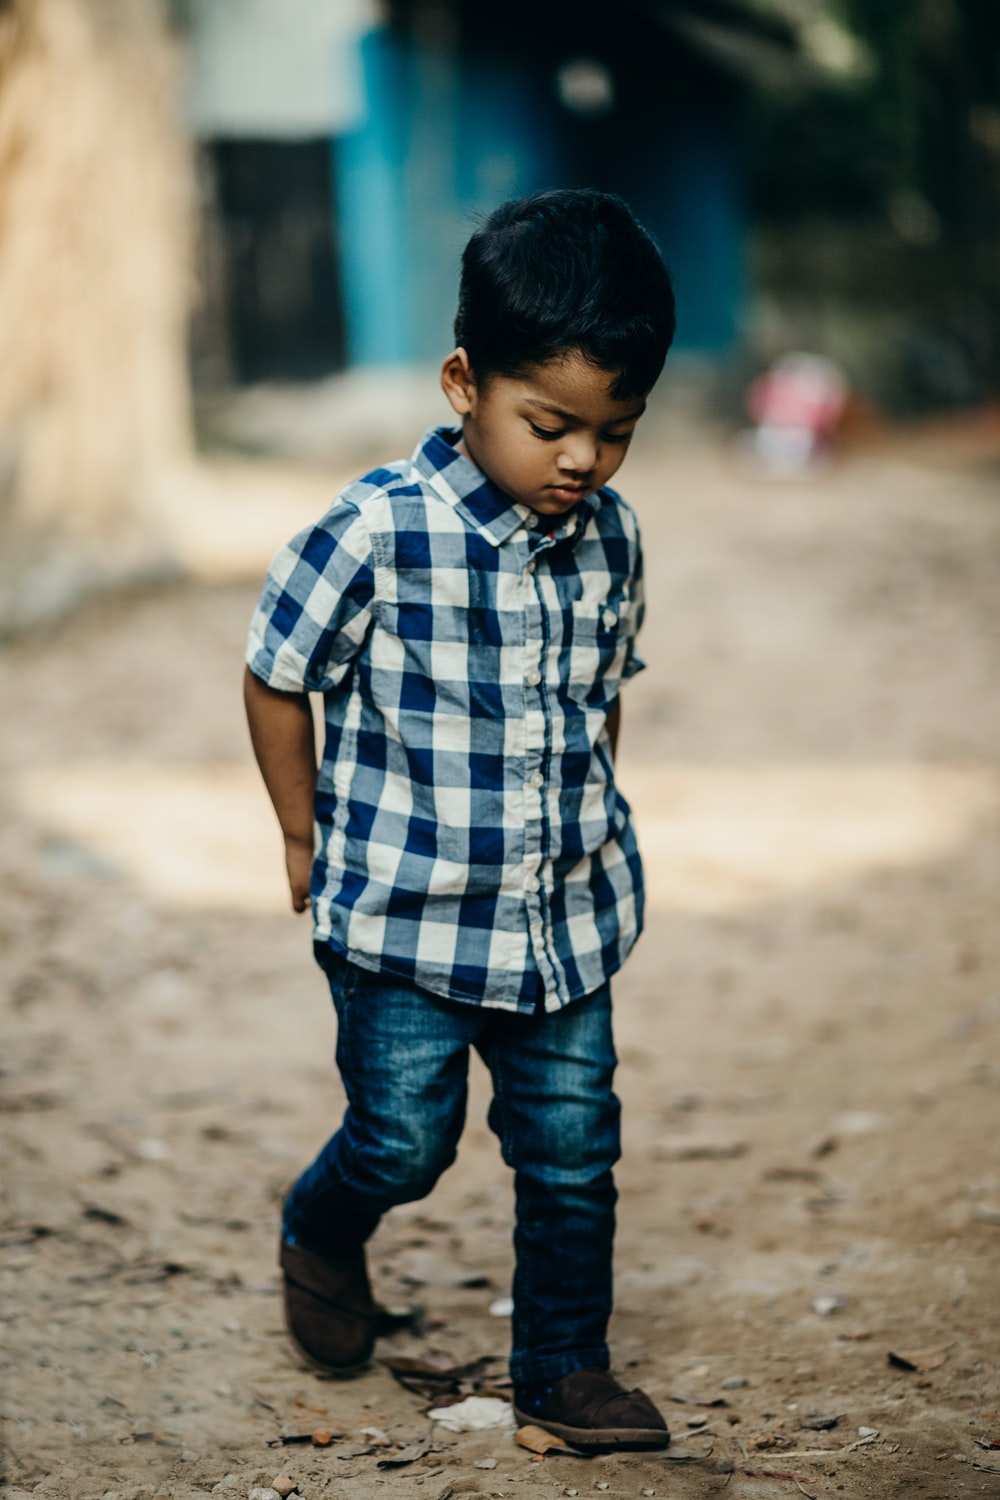 selective focus photography of boy in blue and white checked button-up shirt looking down